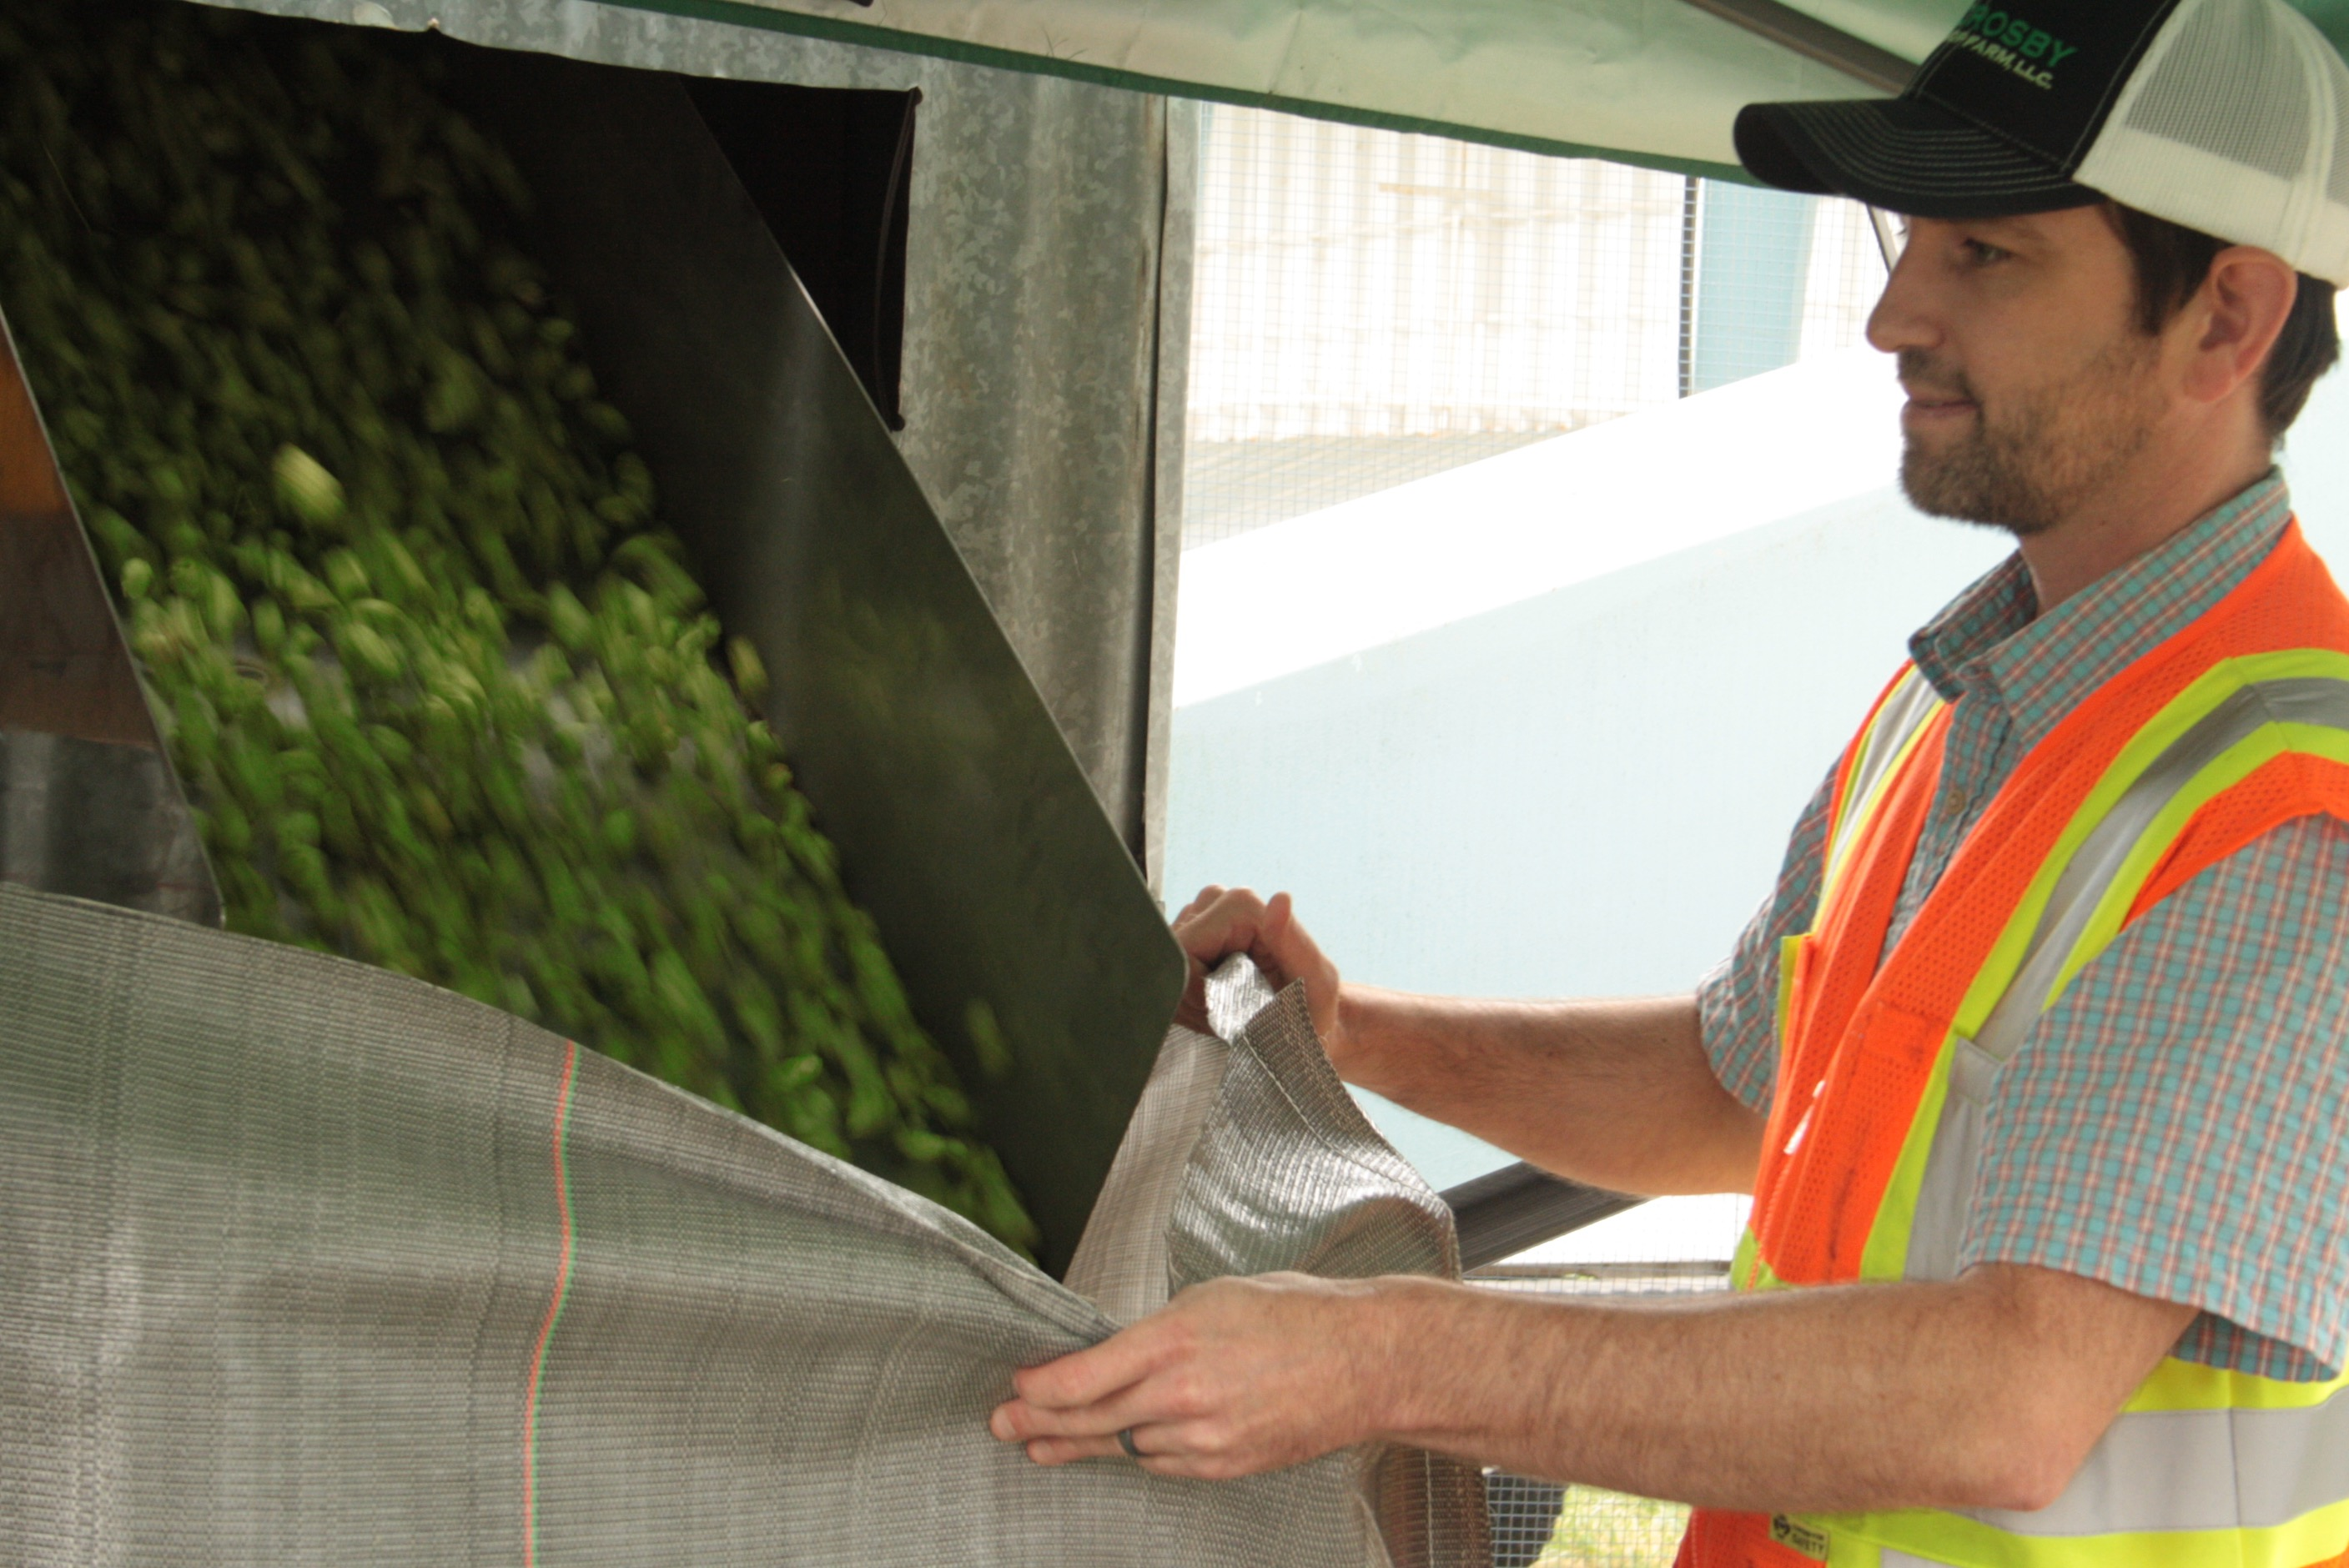 Bagging freshly picked Amarillo Hops at Crosby Hop Farm during the 2016 harvest. (photo by Ryan Spencer)